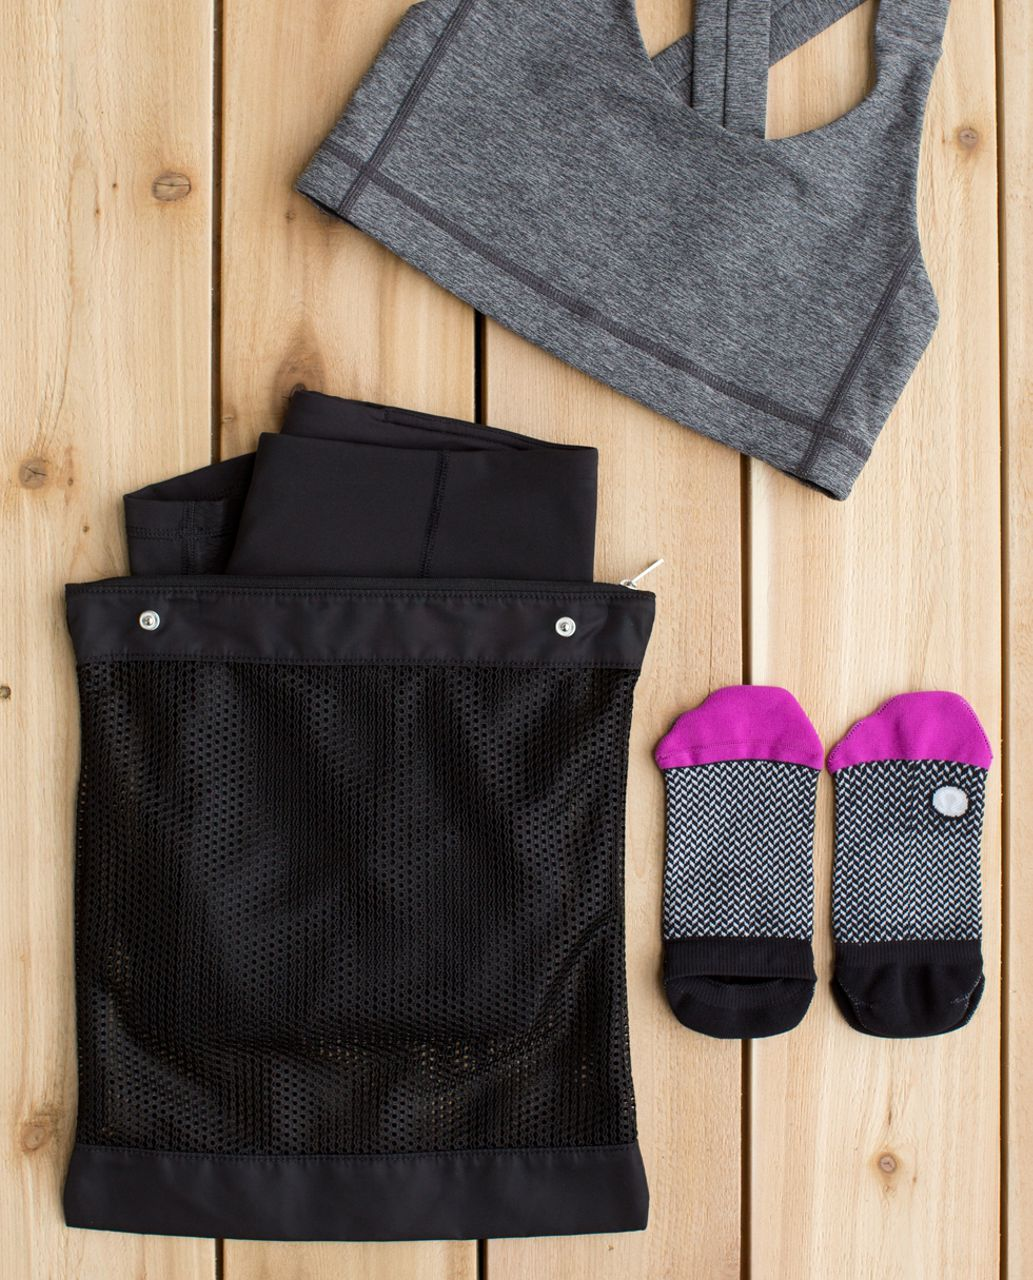 Lululemon Sweat Happens Liner Bags - Black